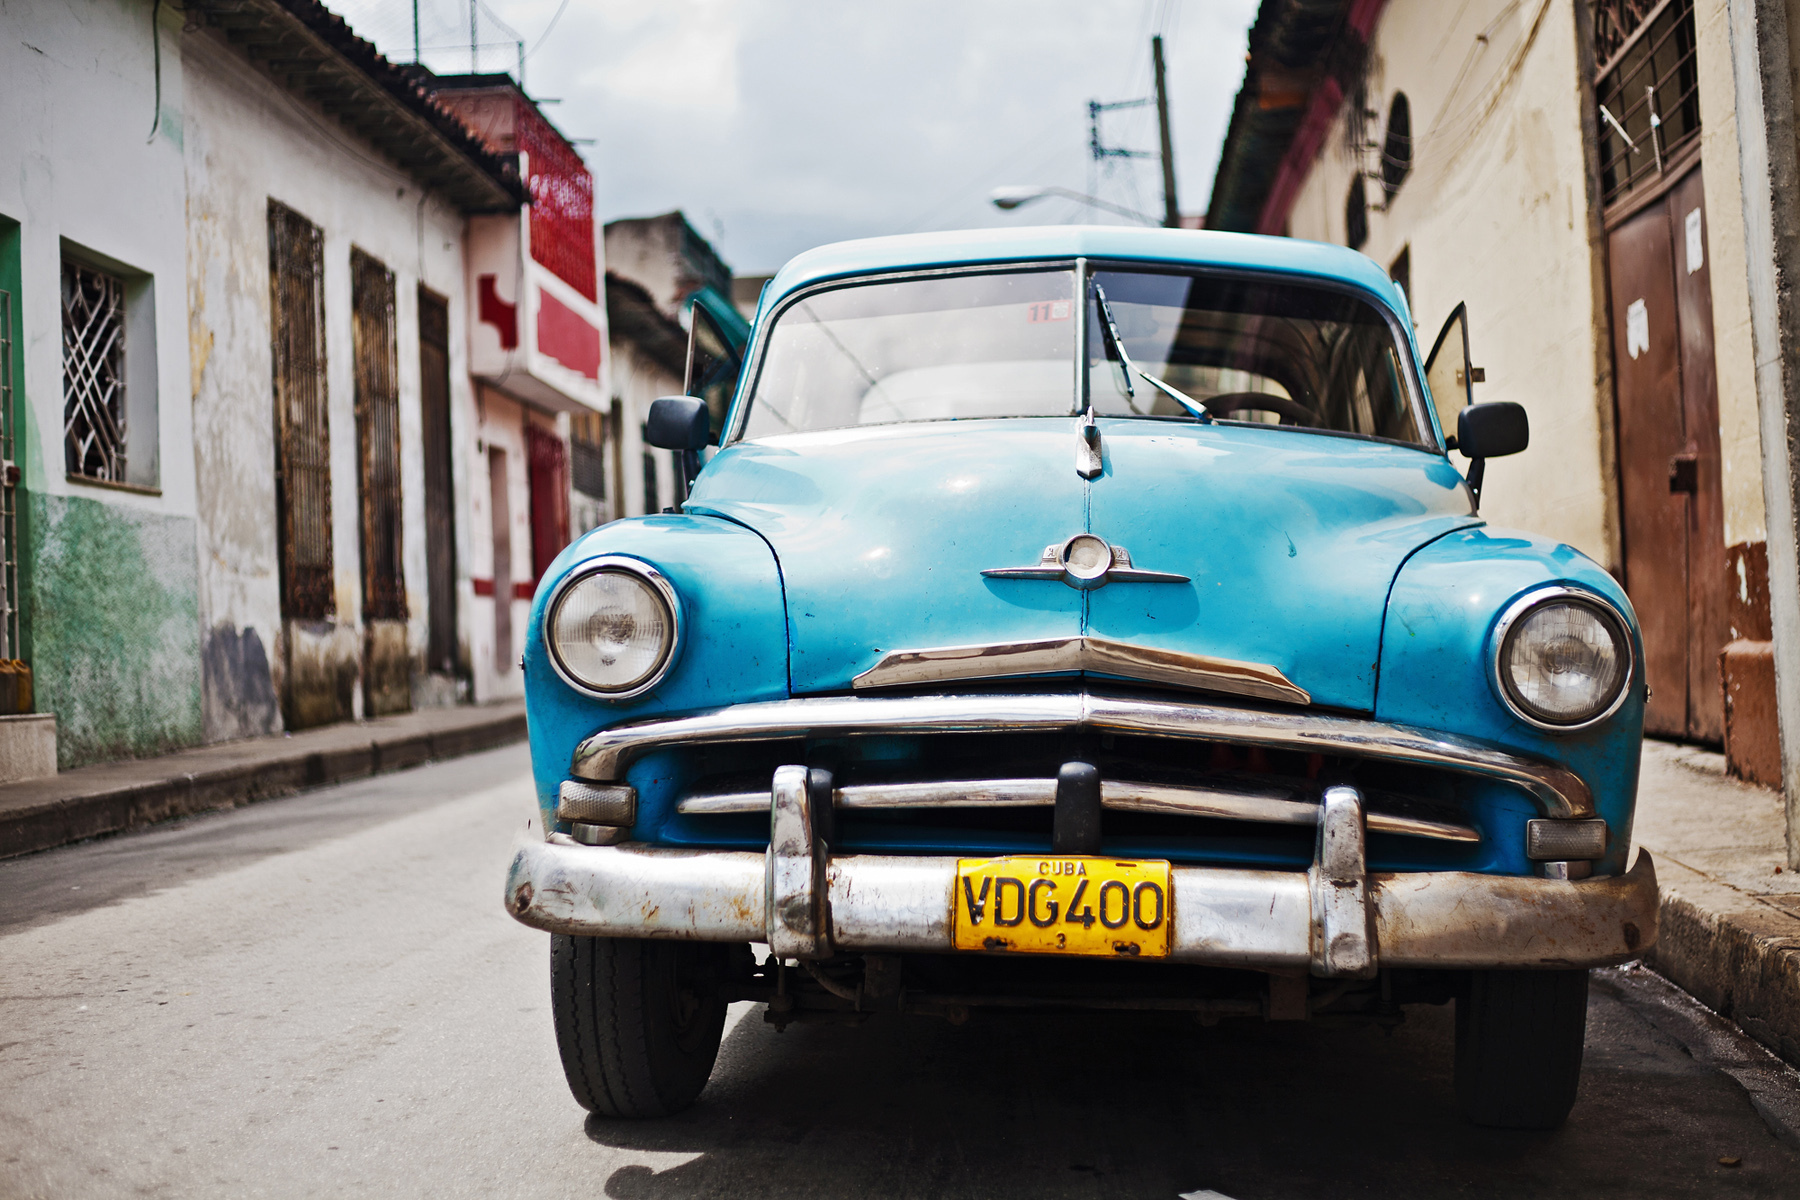 Old American blue car in the street of Santa Clara, Cuba